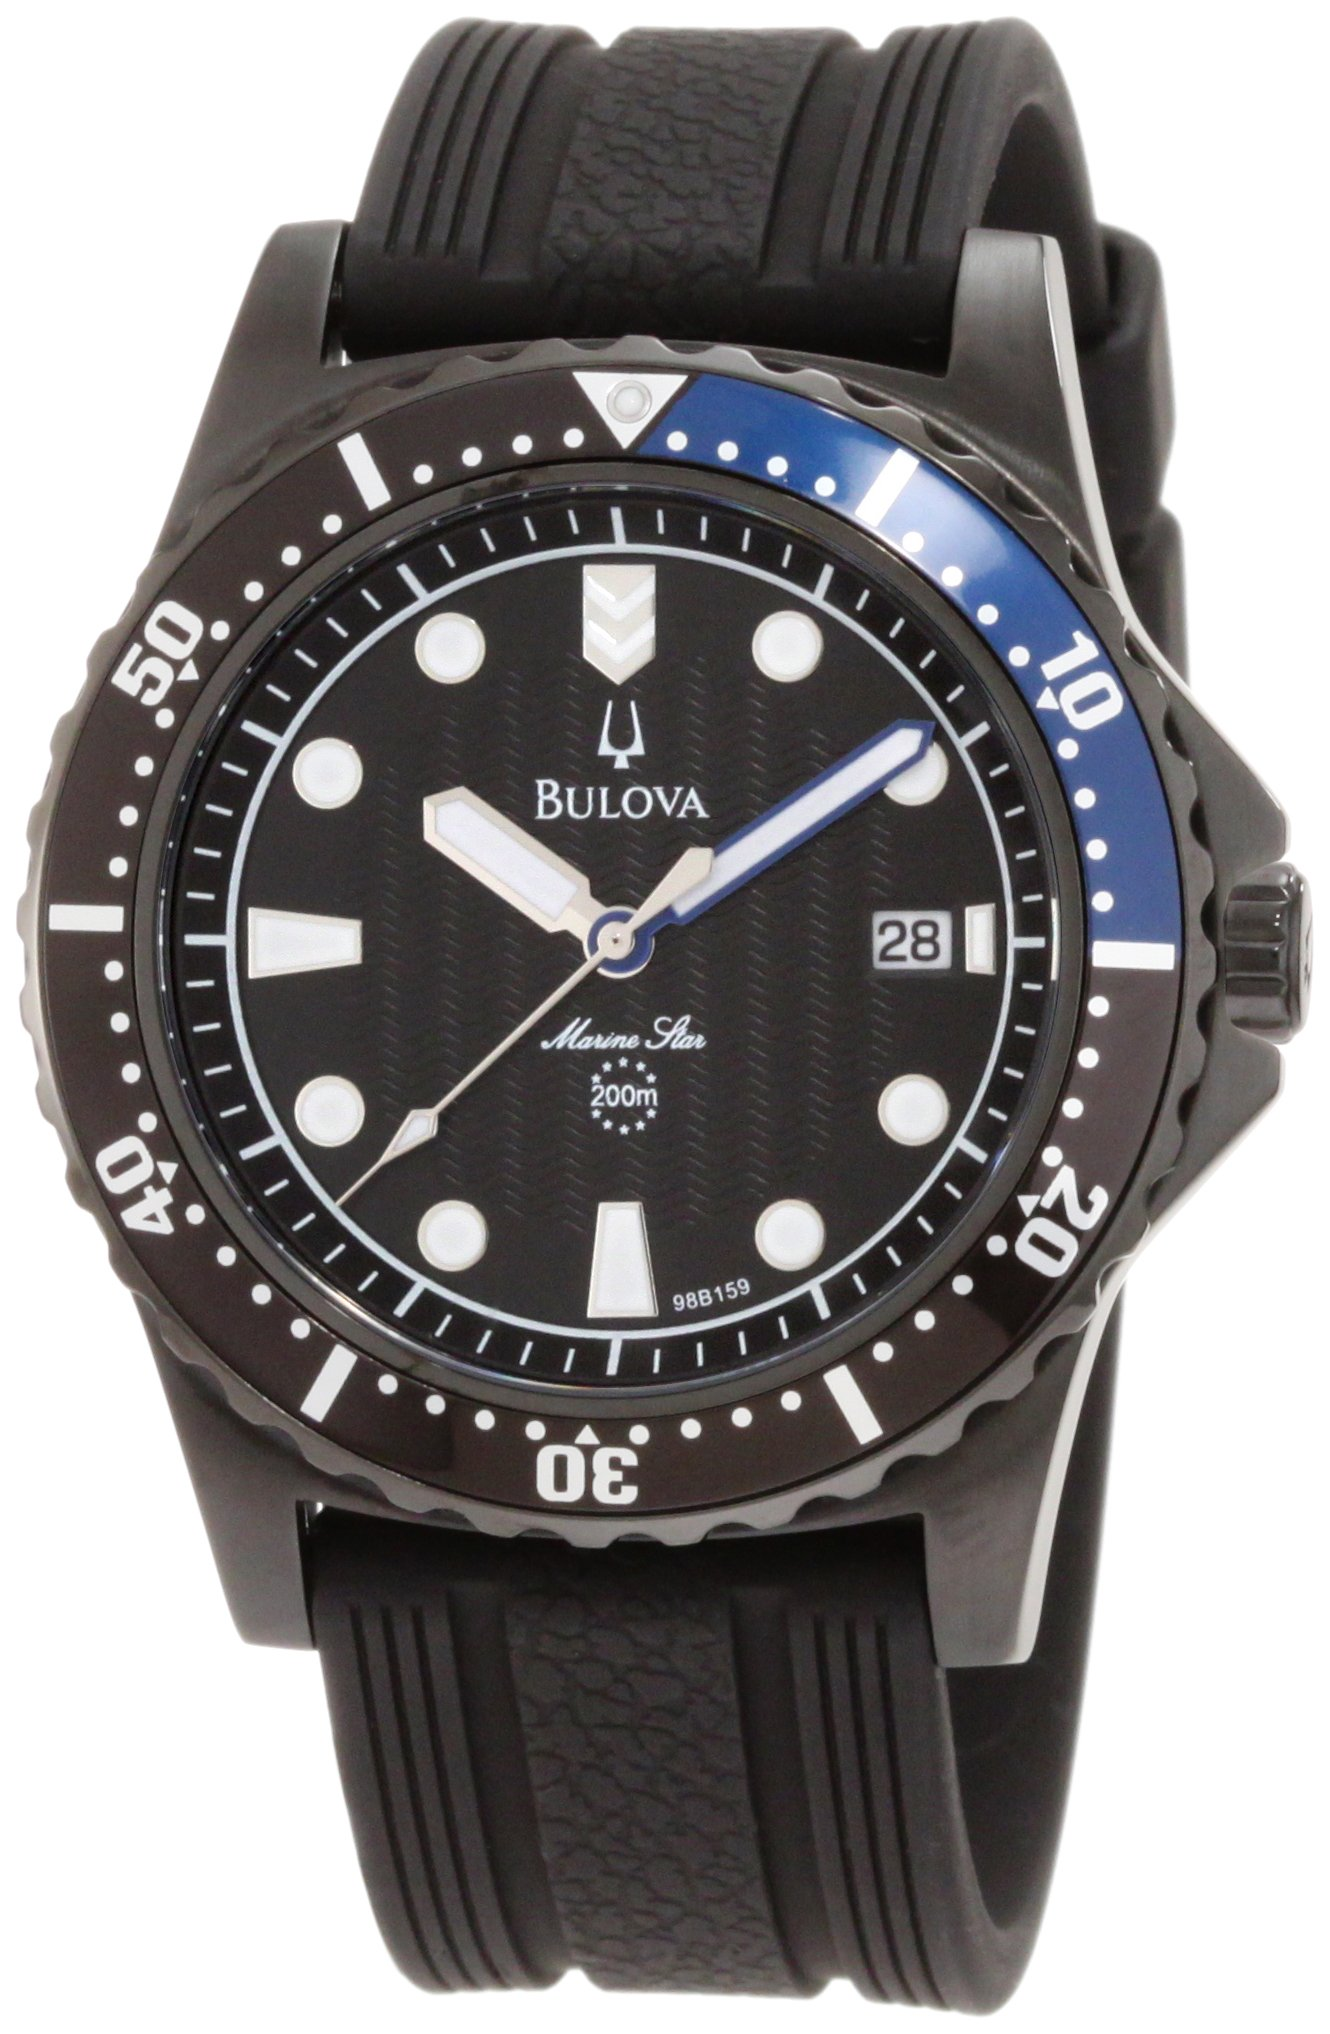 Bulova Men's 98B159 Marine Star Rubber Strap Watch